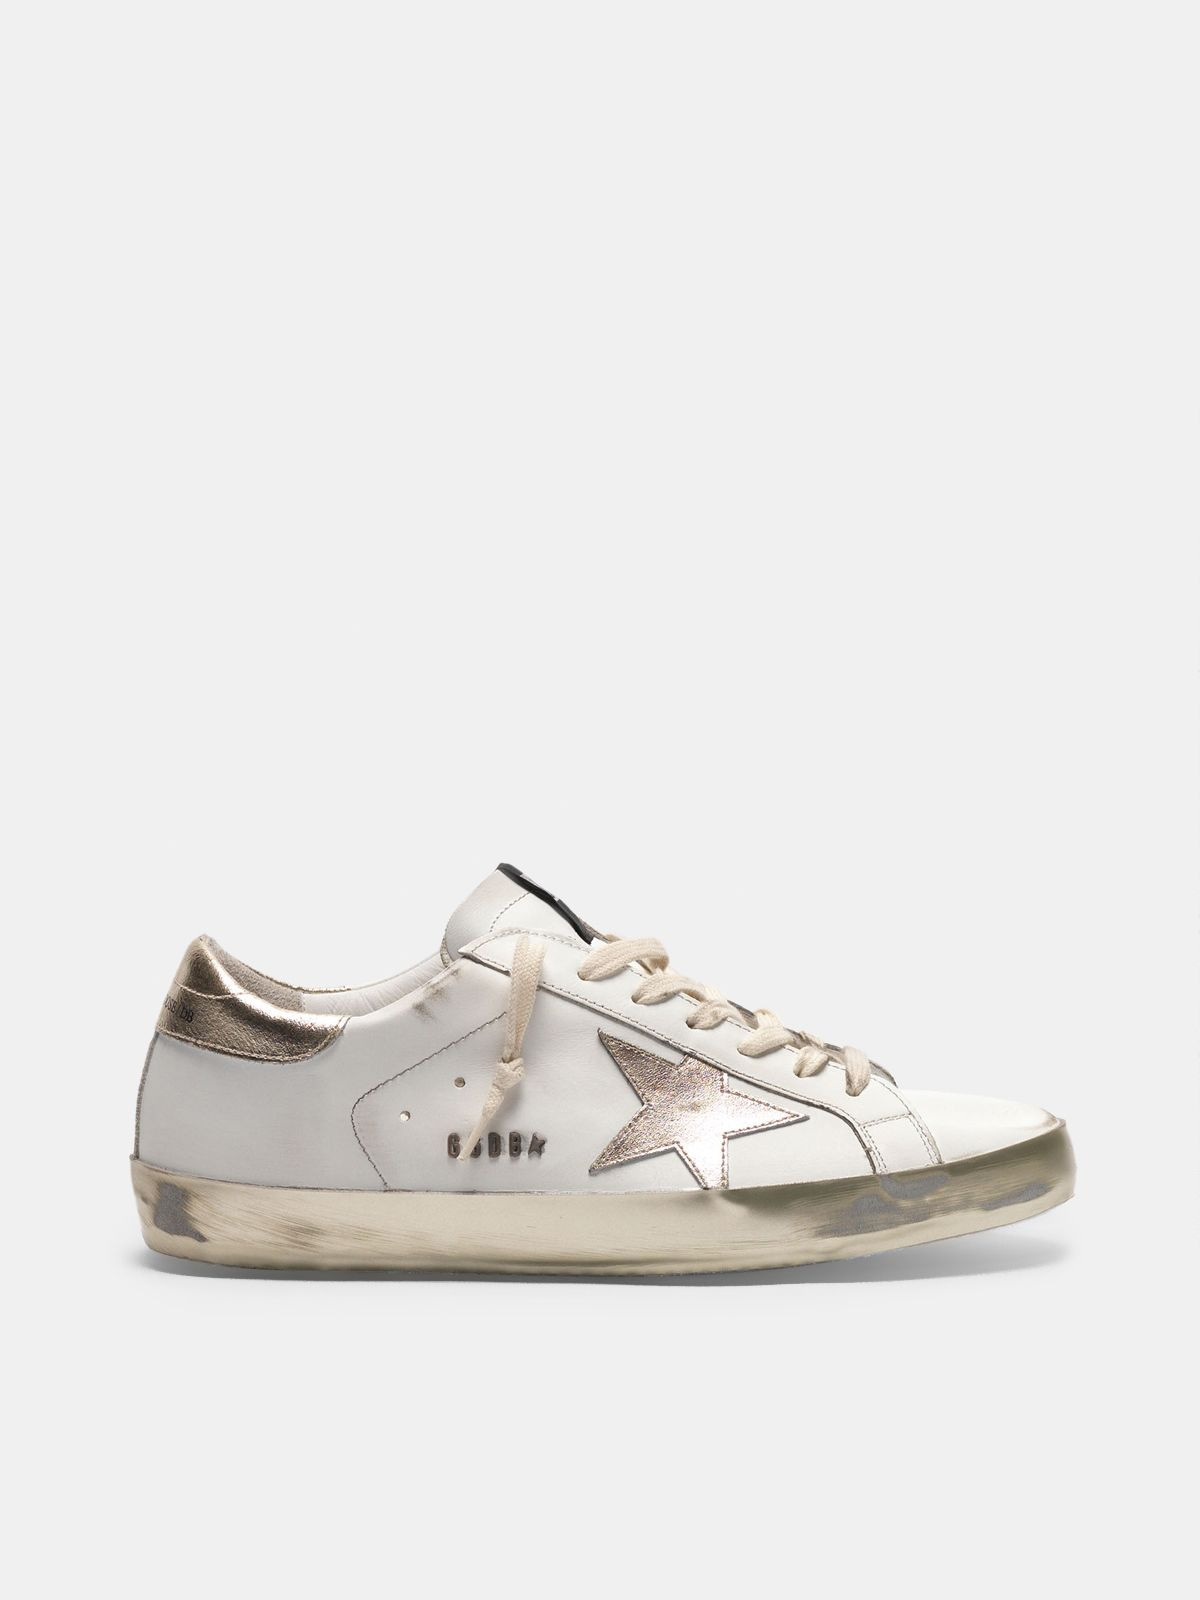 Golden Goose - Super-Star sneakers with details and gold foxing in